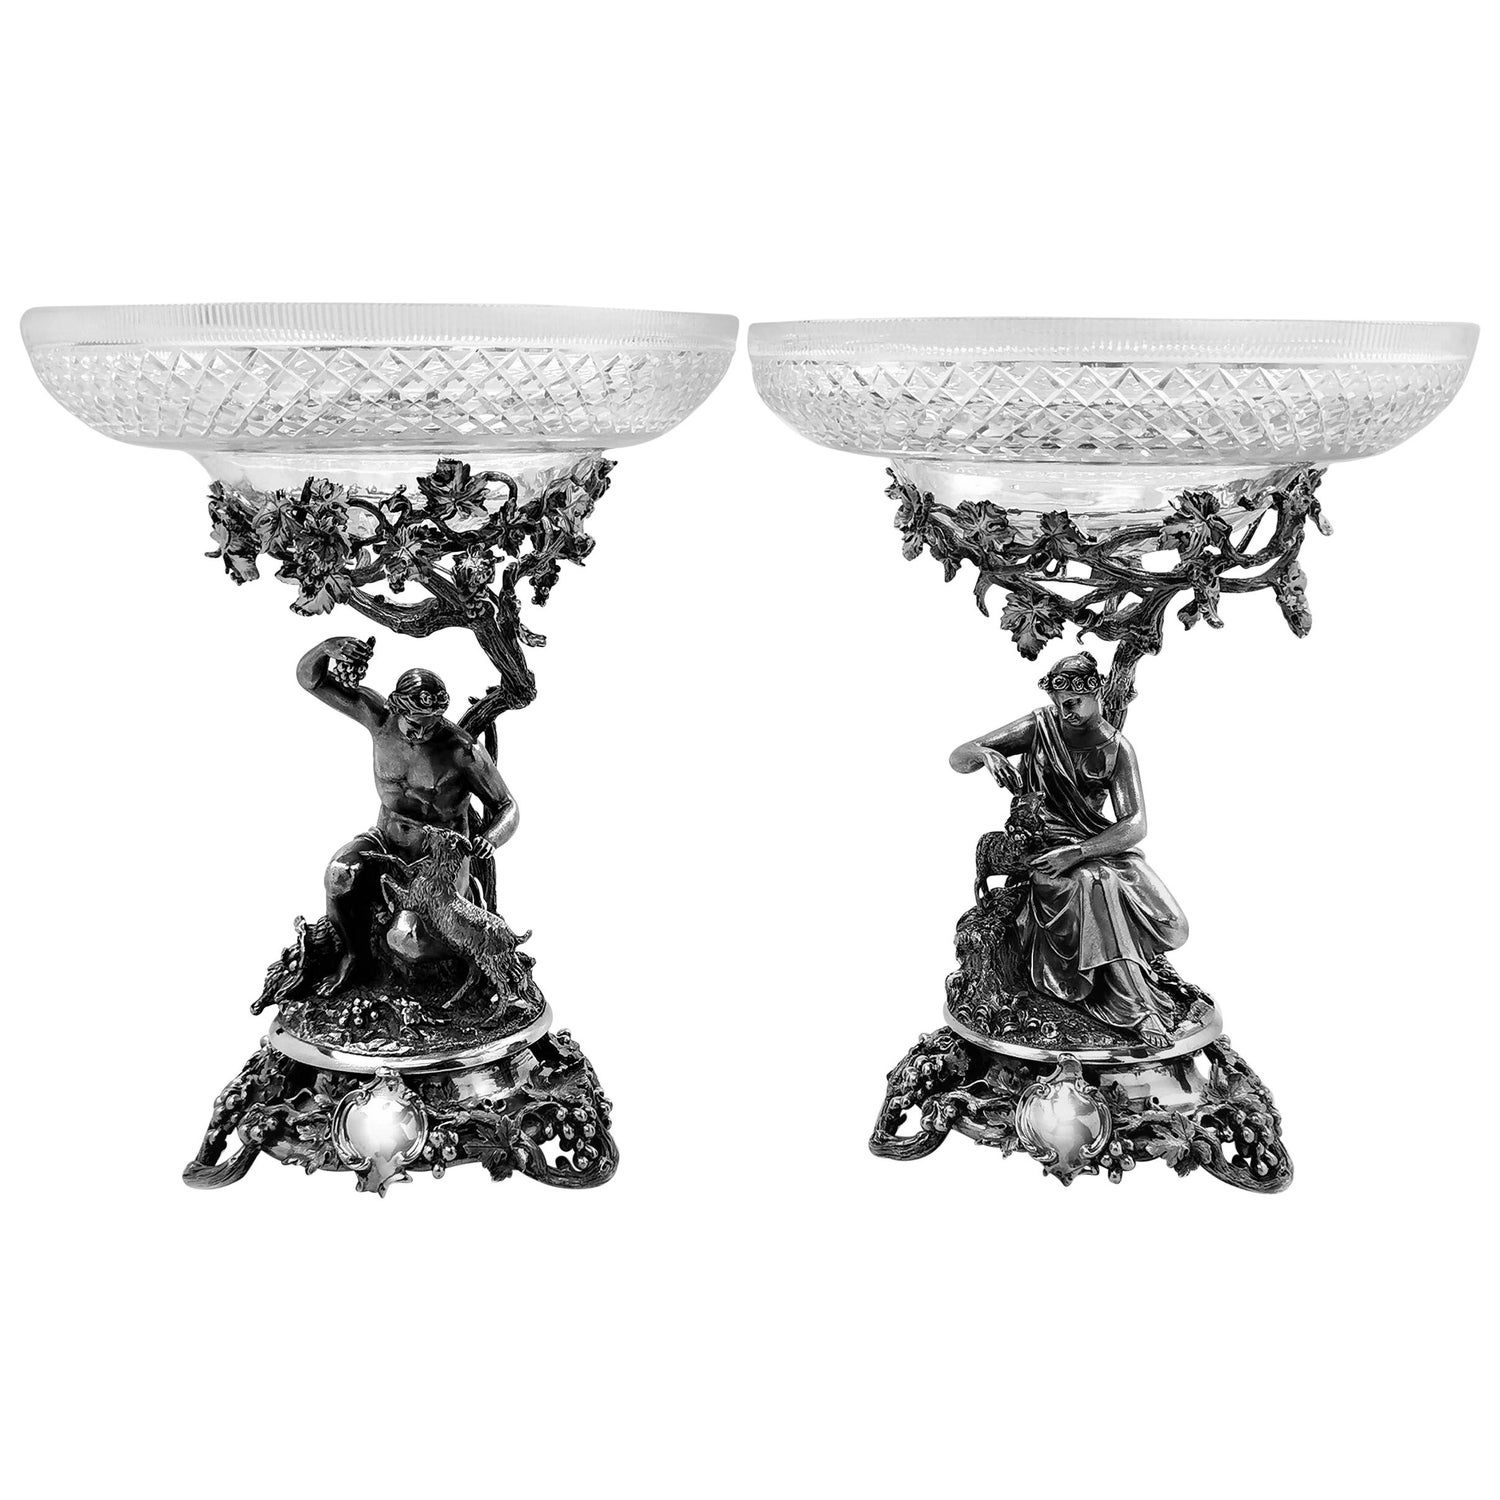 Pair of Antique Victorian Sterling Silver and Glass Comports, 1848